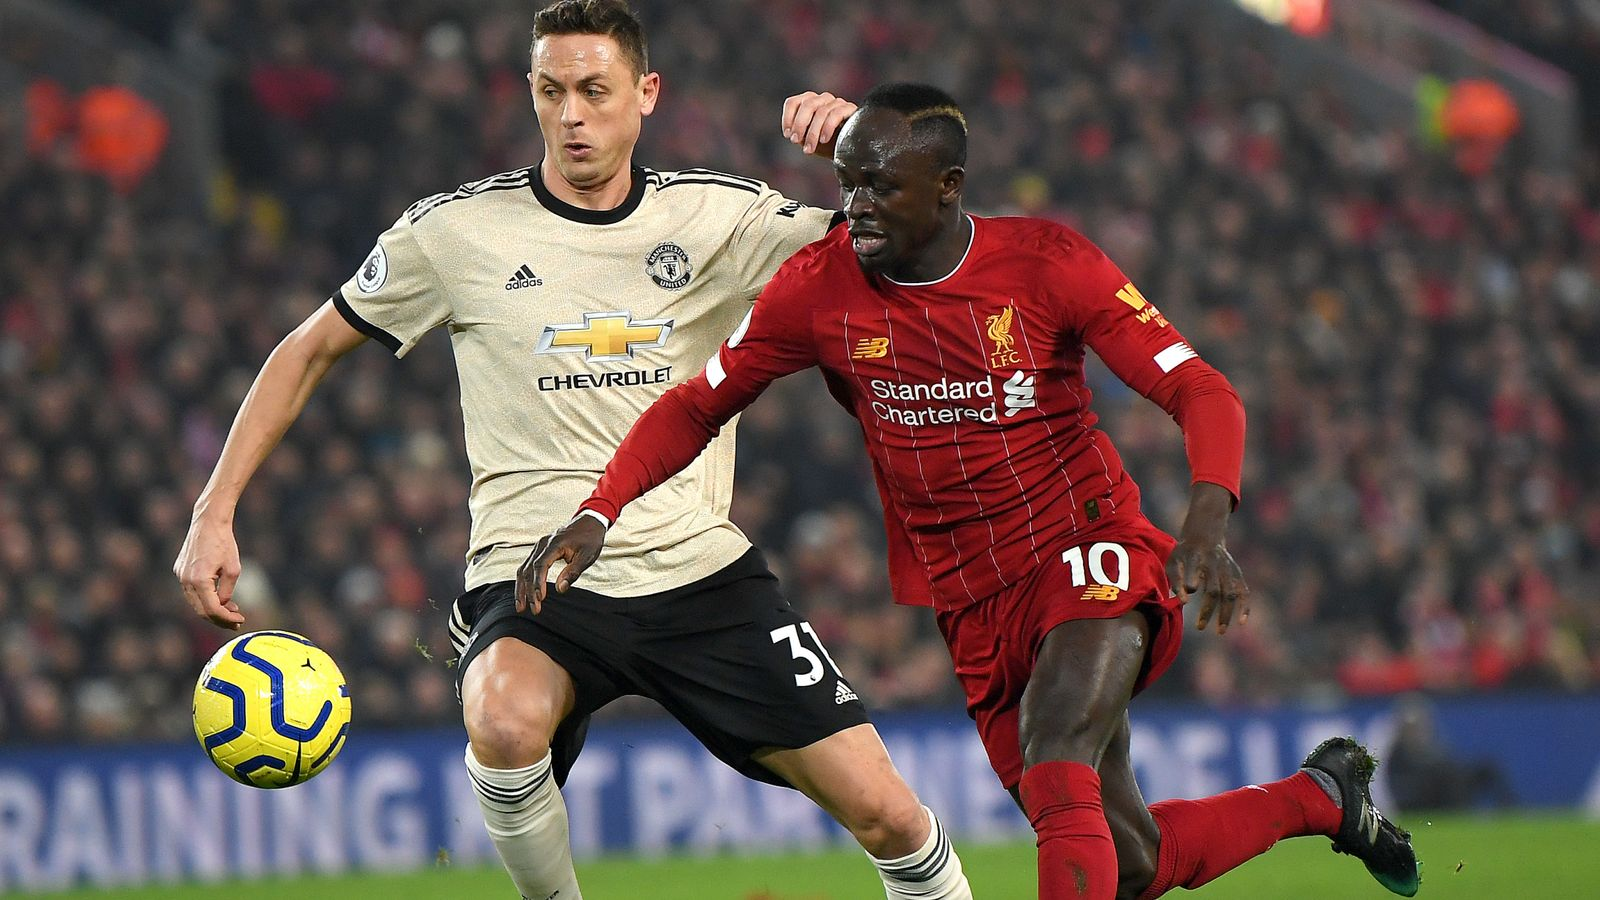 Nemanja Matic: Manchester United 'cannot allow' rivals to dominate Premier League next season - Sky Sports